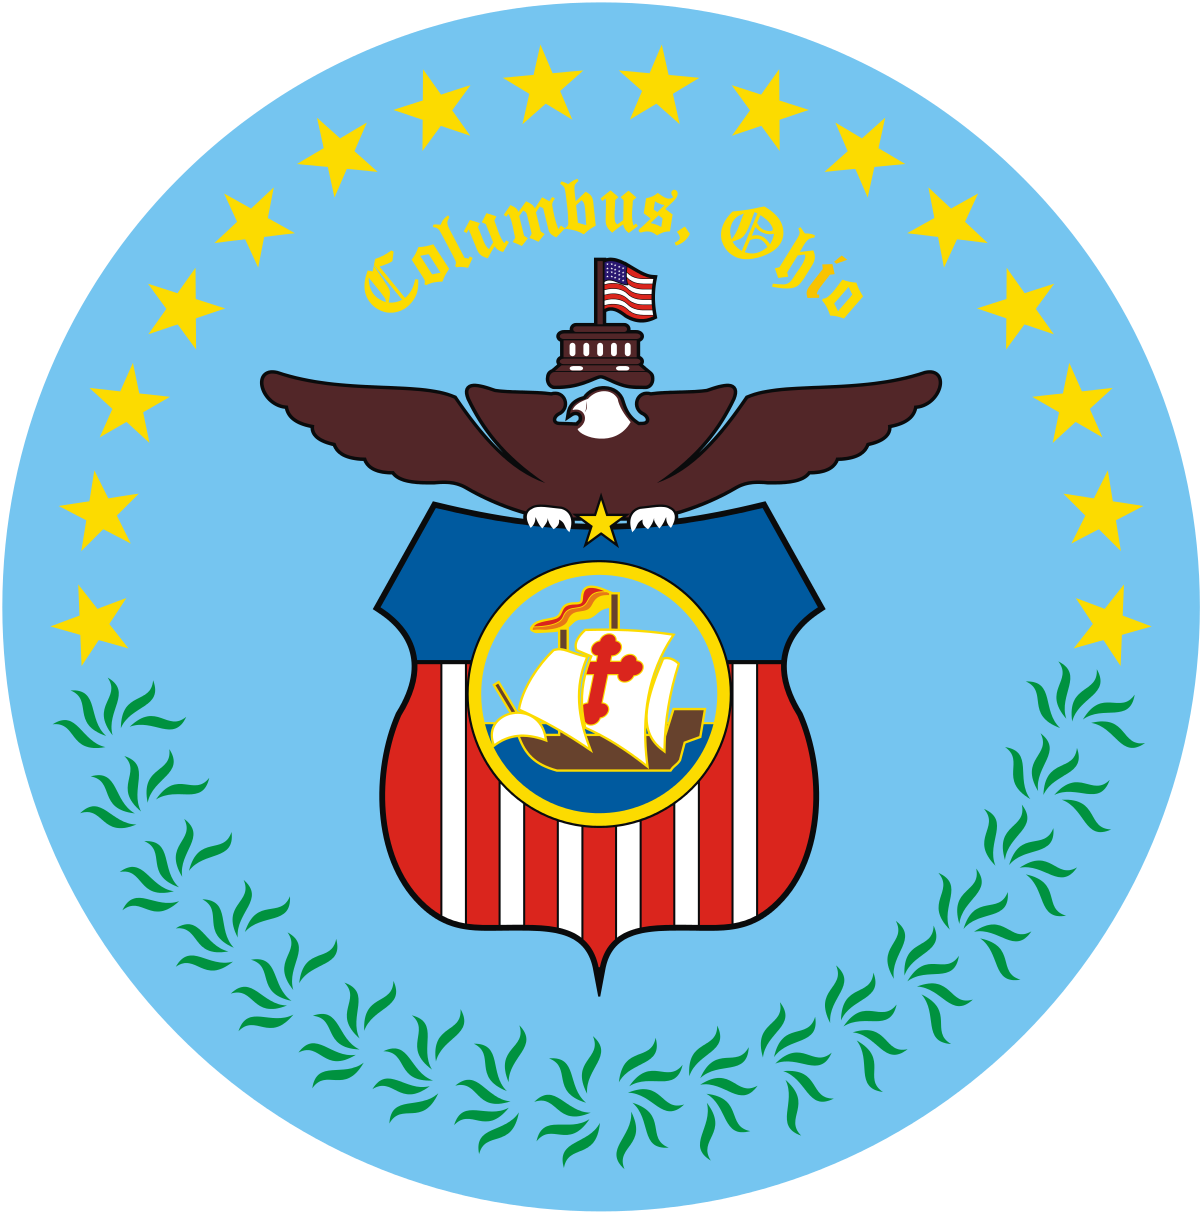 png freeuse library Christopher columbus clipart wikipedia. File seal of ohio.